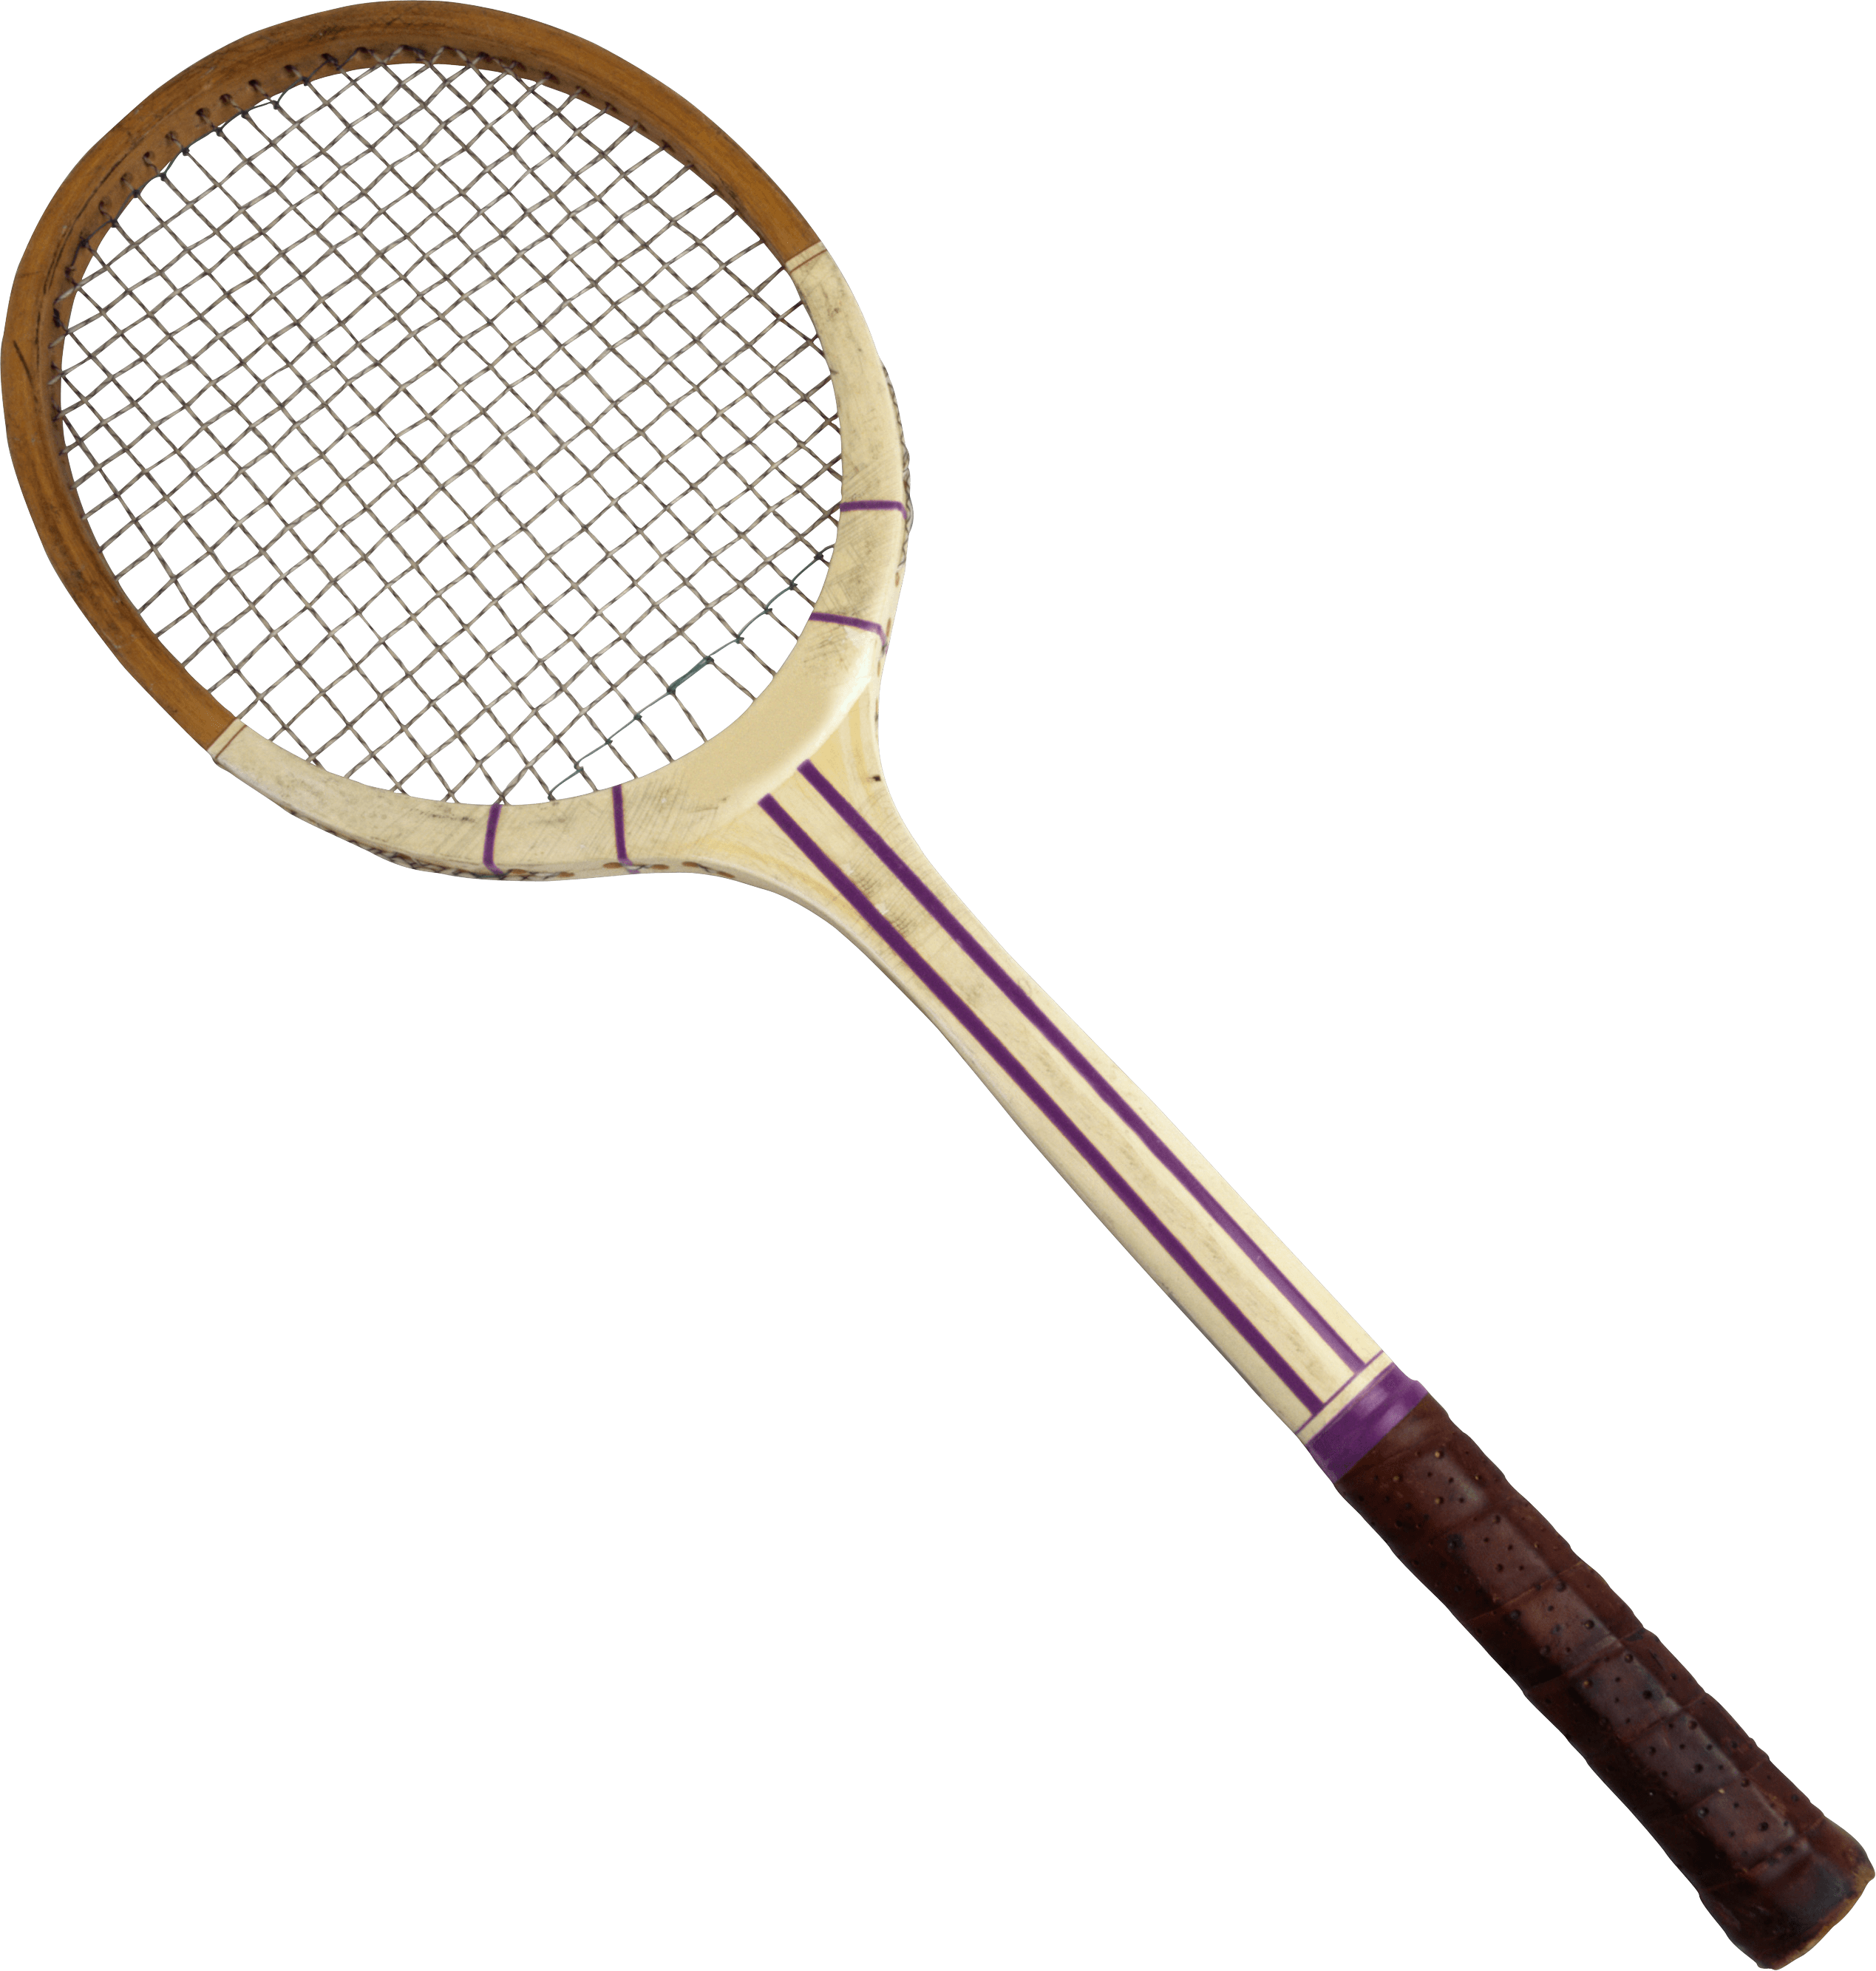 jpg download Transparent background free on. Badminton clipart badminton net.